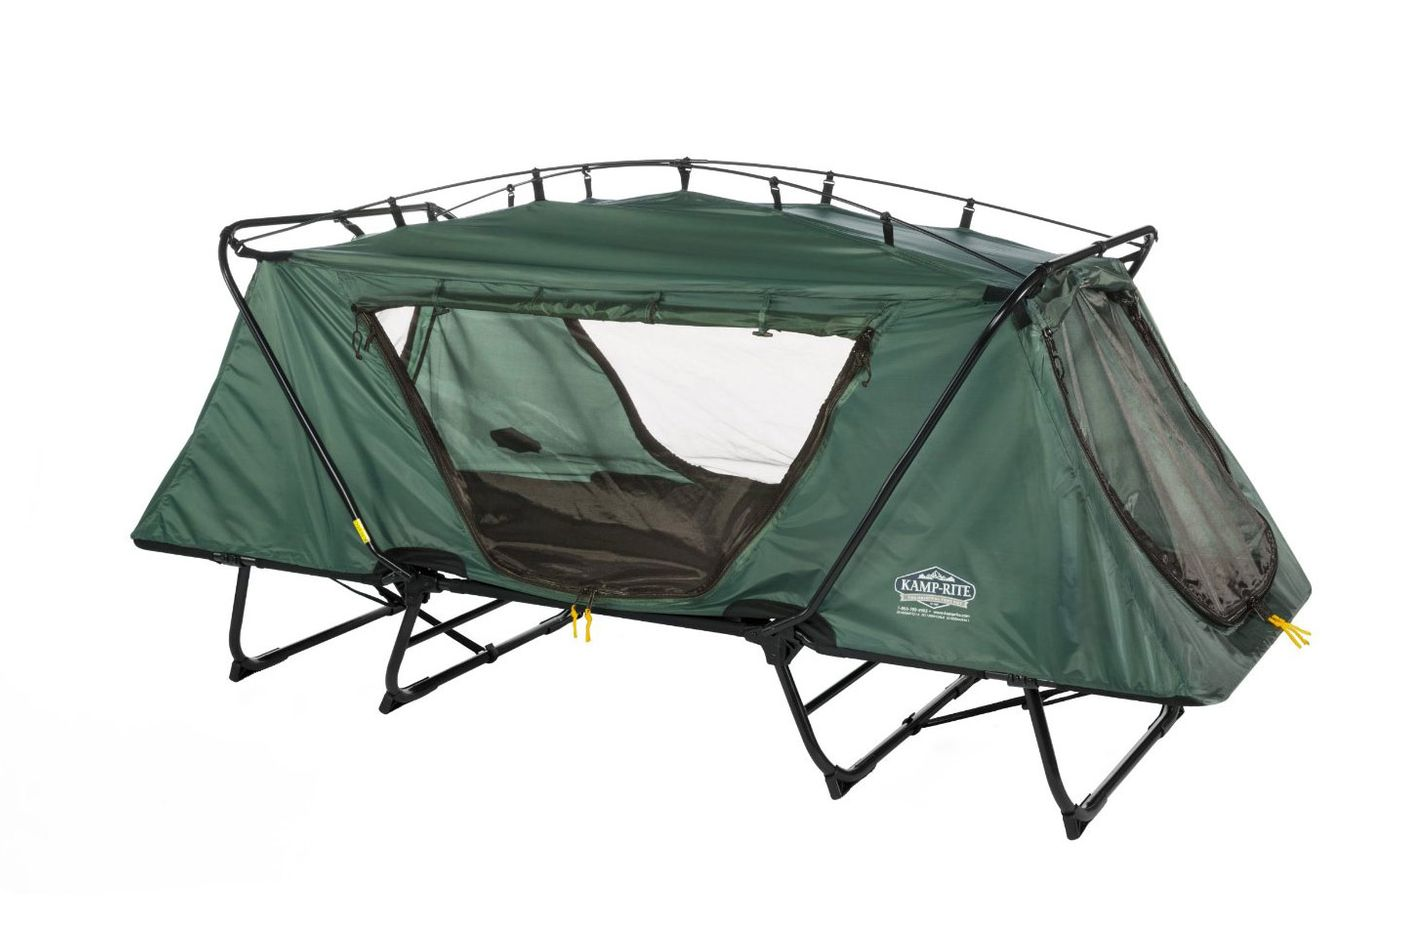 The Best Outdoor Tents On Amazon Reviews